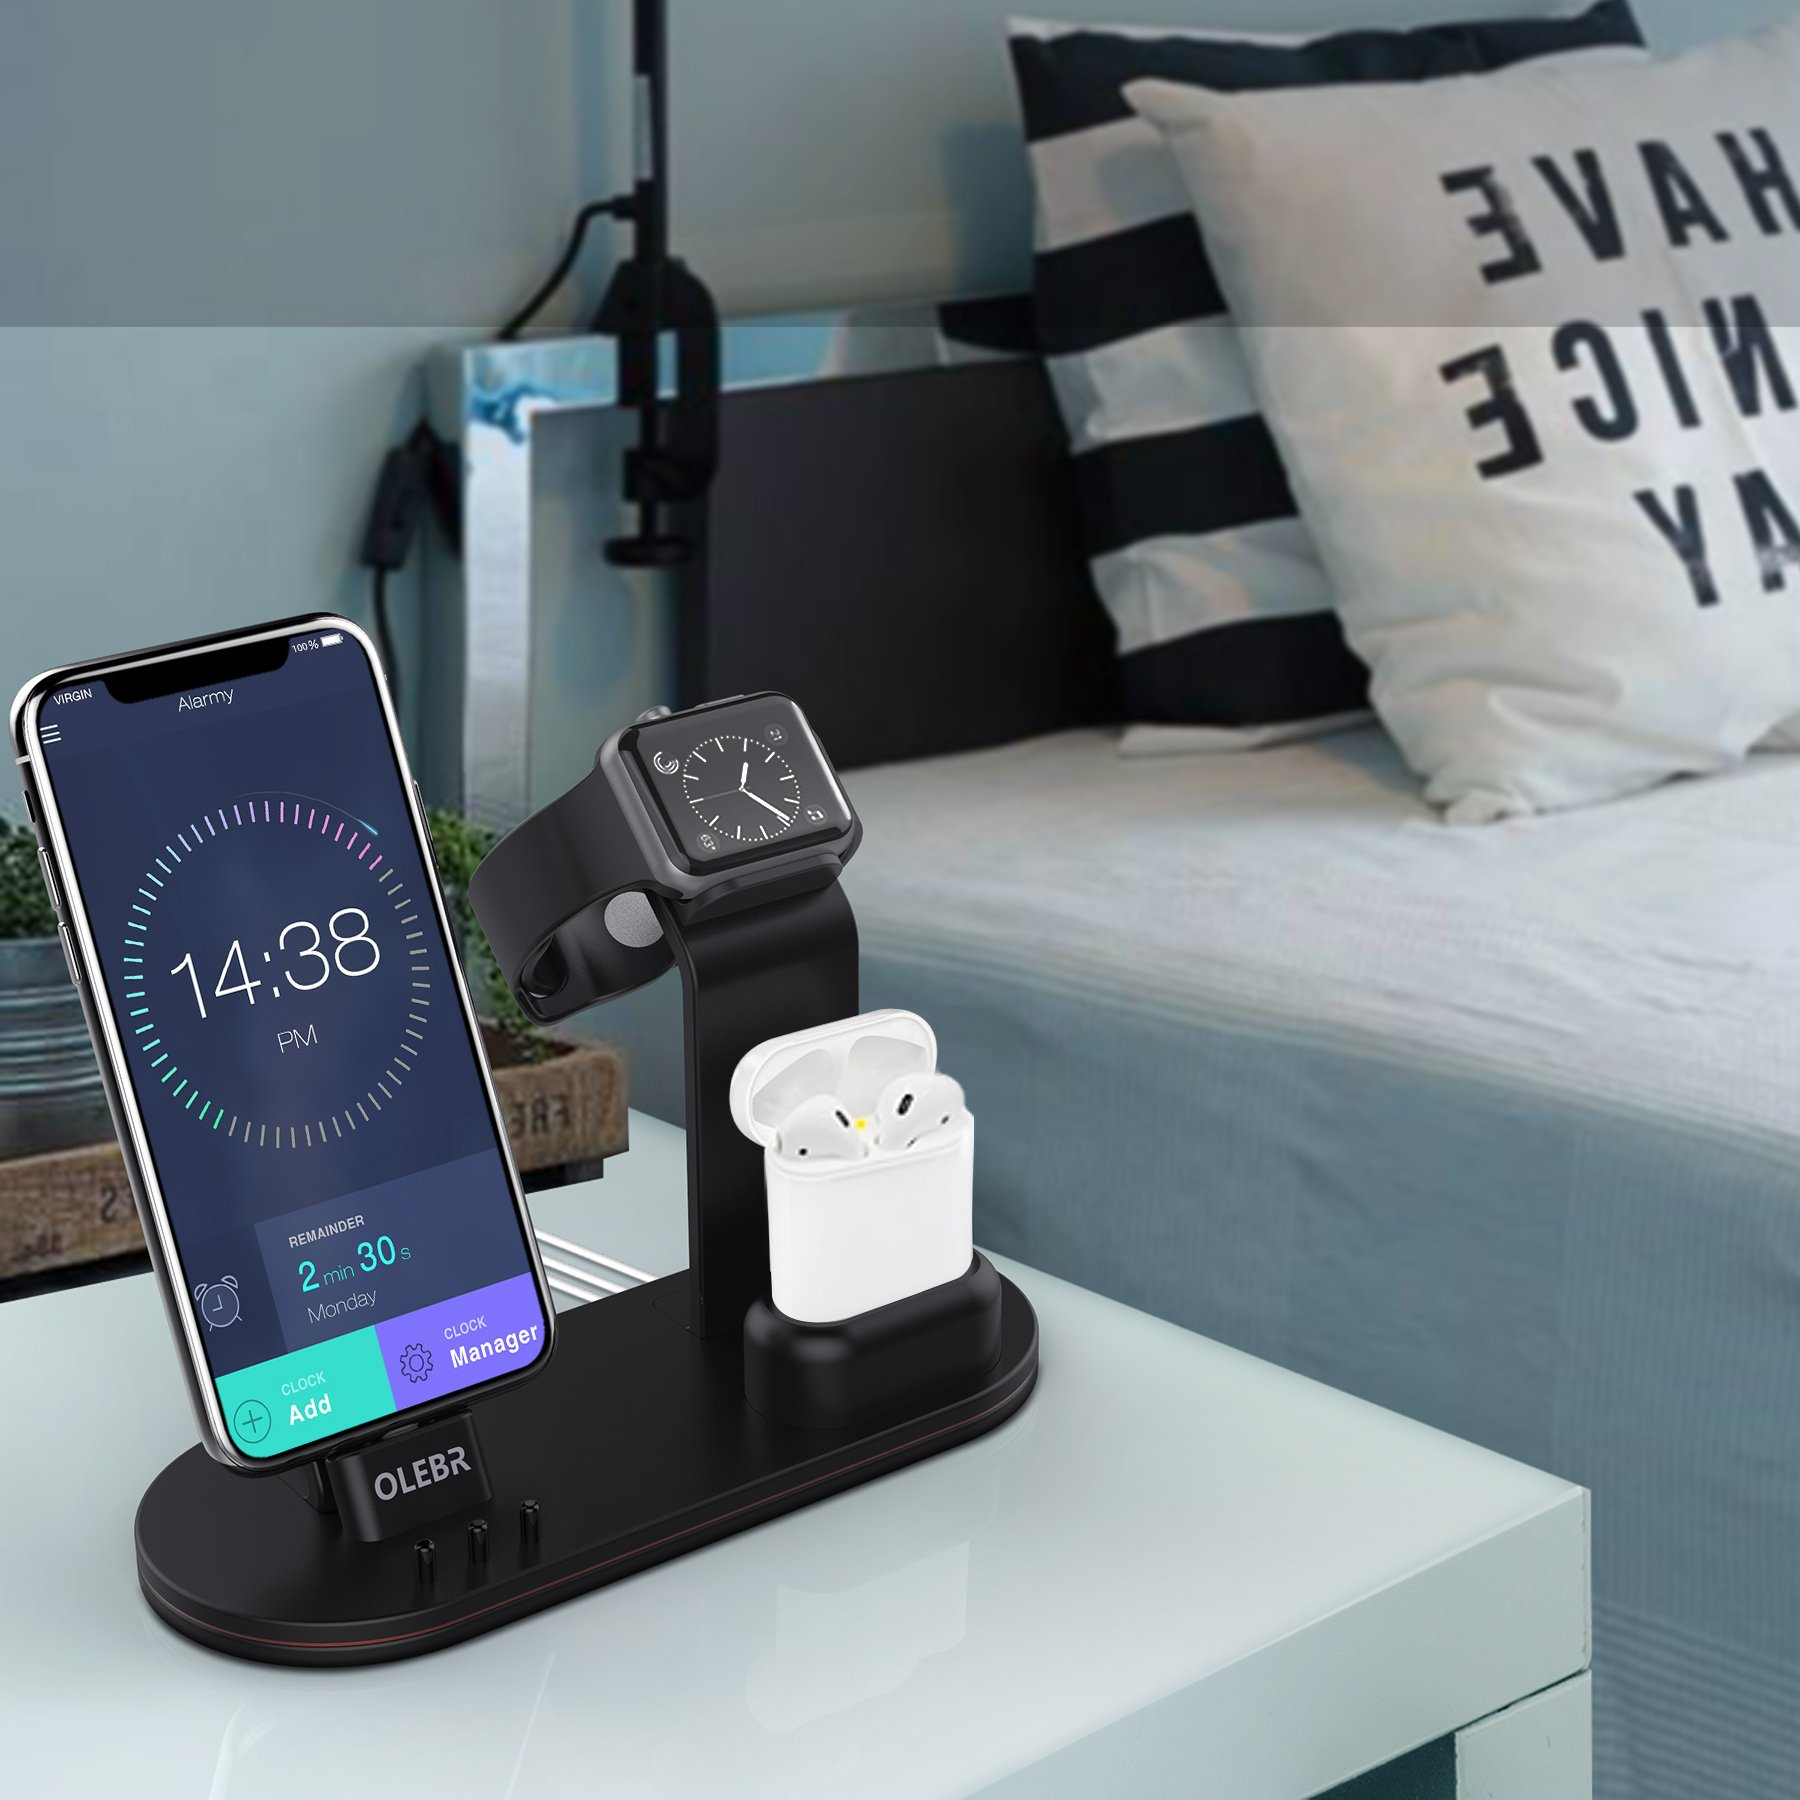 OLEBR Charging Stand for Apple Watch Aluminum Watch Charging Stand for AirPods, Apple Watch, Apple Watch Series 3/2/1/ AirPods/iPhone X/8/8Plus/7/7 Plus /6S /6S Plus/iPad by OLEBR (Image #3)